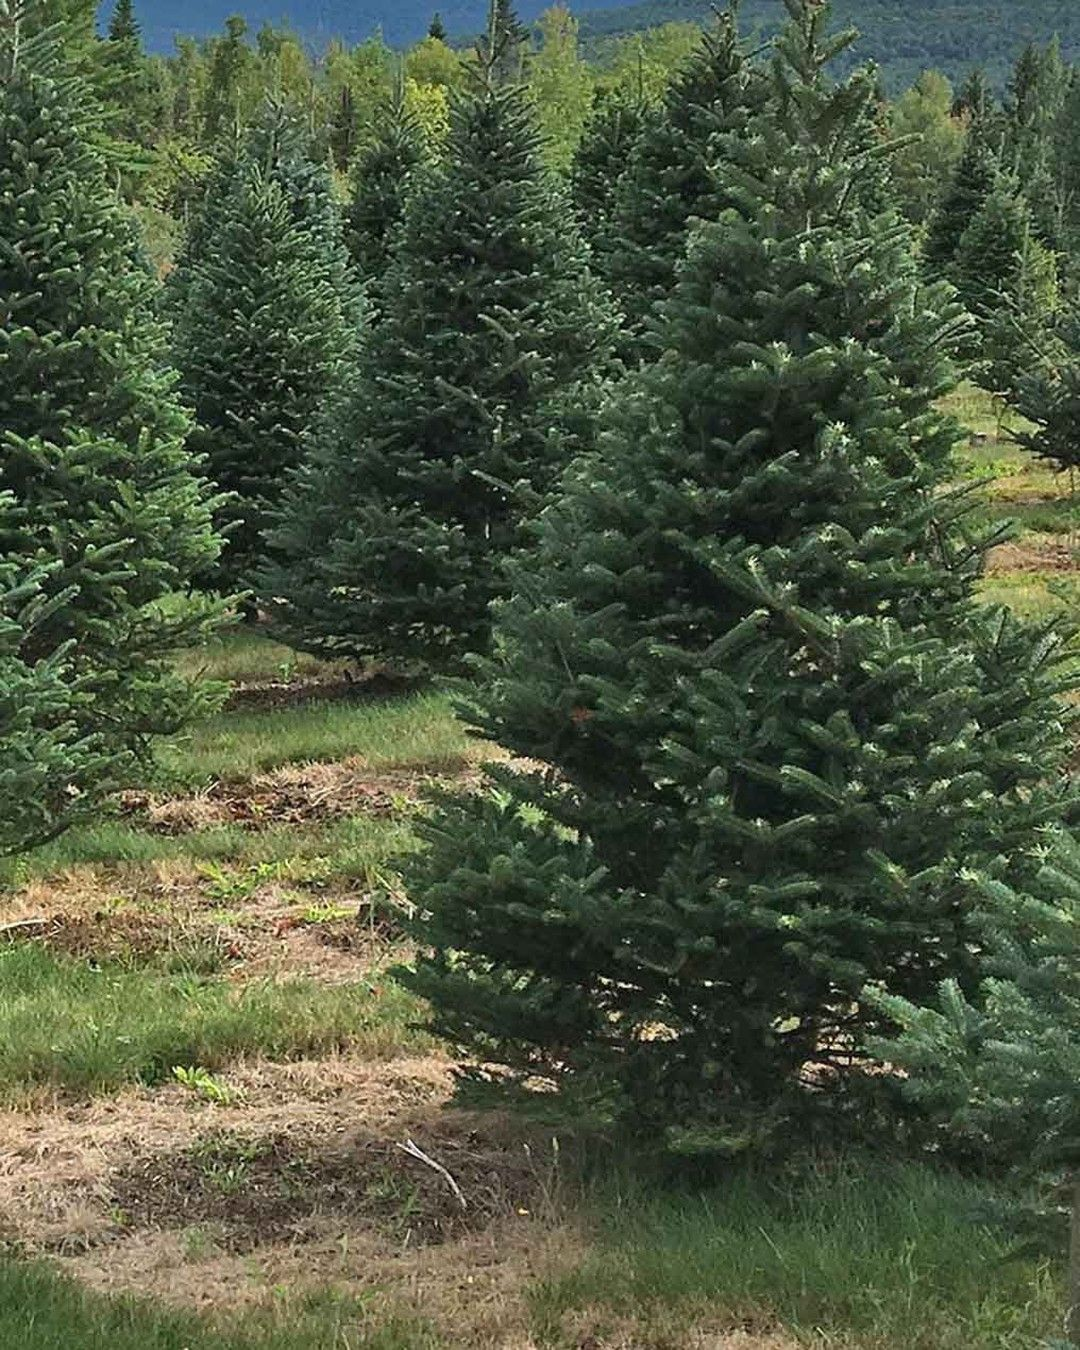 Sheffieldsseed Posted To Instagram Balsam Fir Tree Farm Best Christmas Tree Ever Chistmastree Treeseed Cool Christmas Trees Balsam Fir Tree Tree Farms